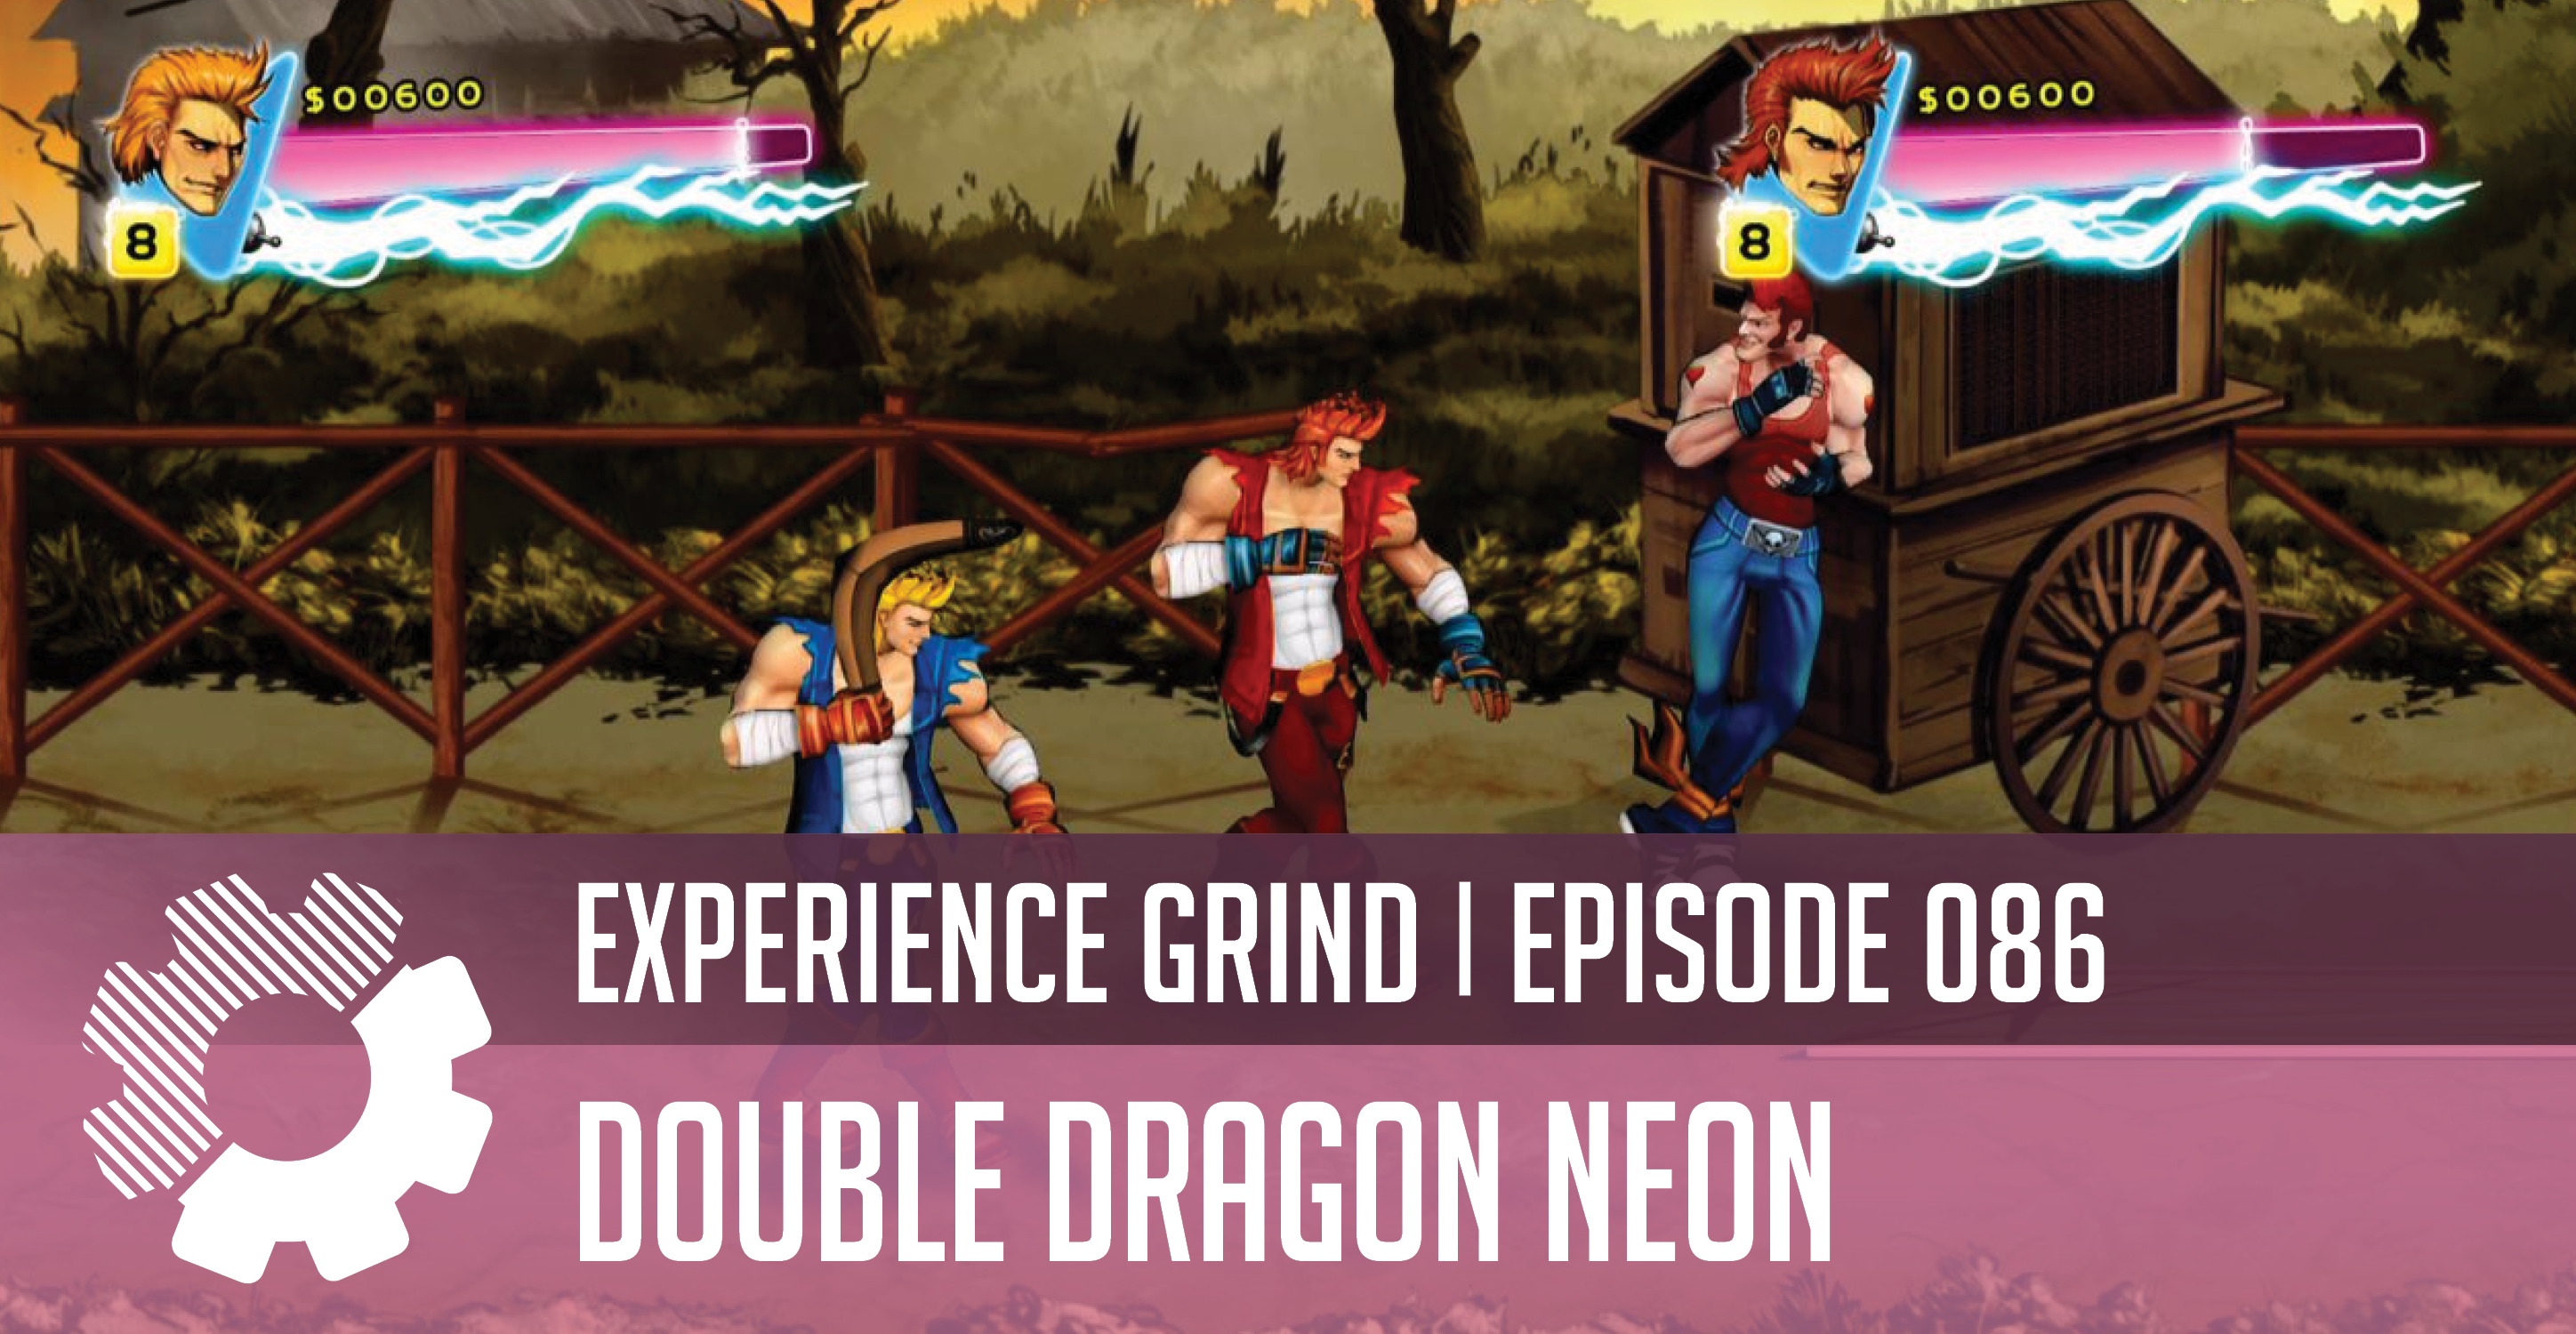 Episode 86 Double Dragon Neon Experience Grind